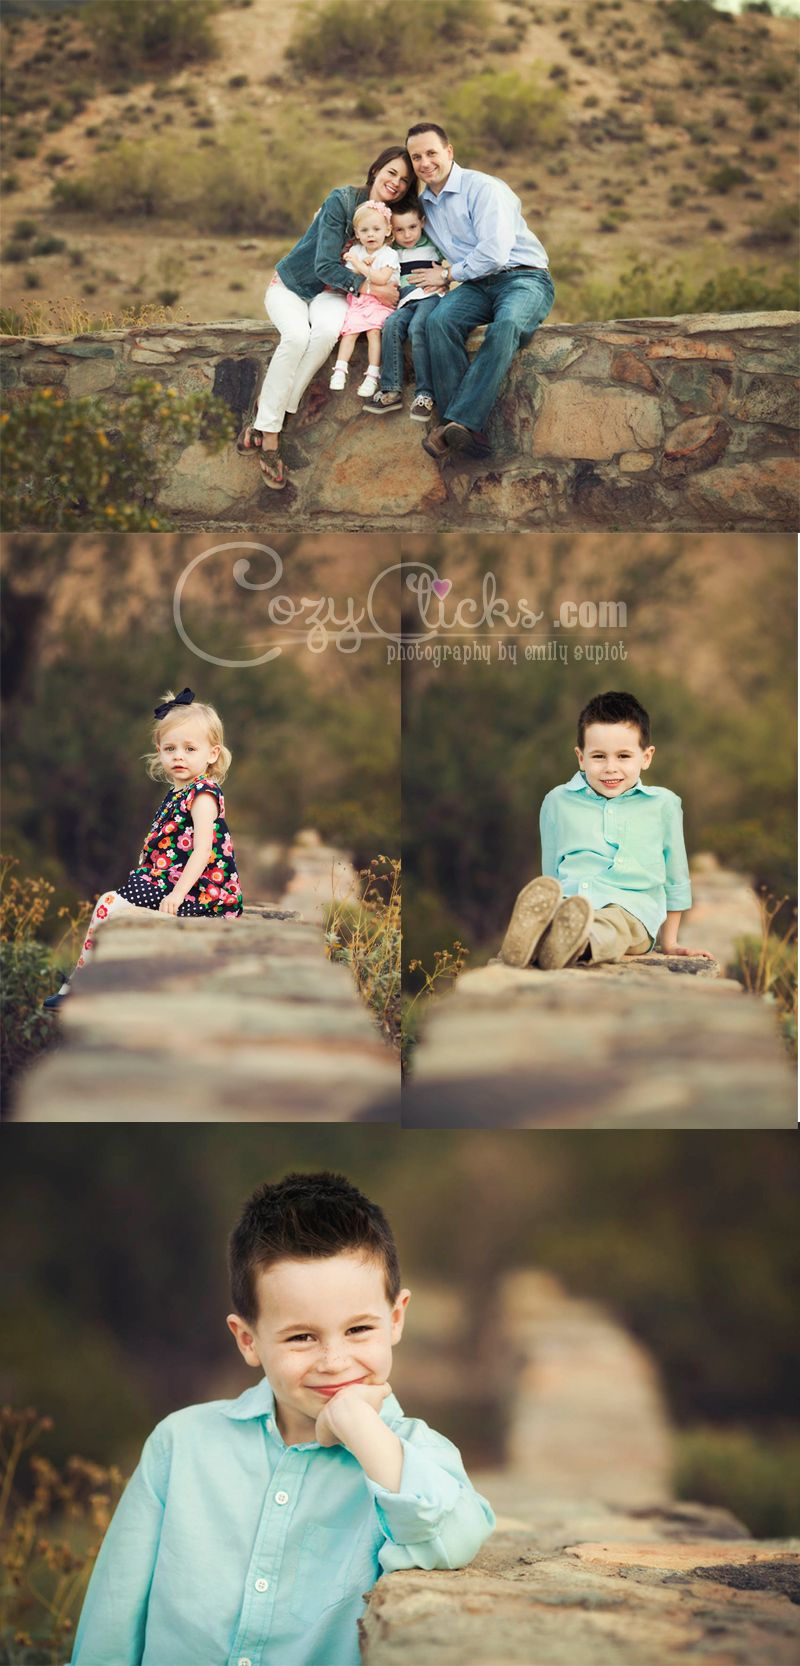 South Mountain sunset family photo shoot in Phoenix Arizona